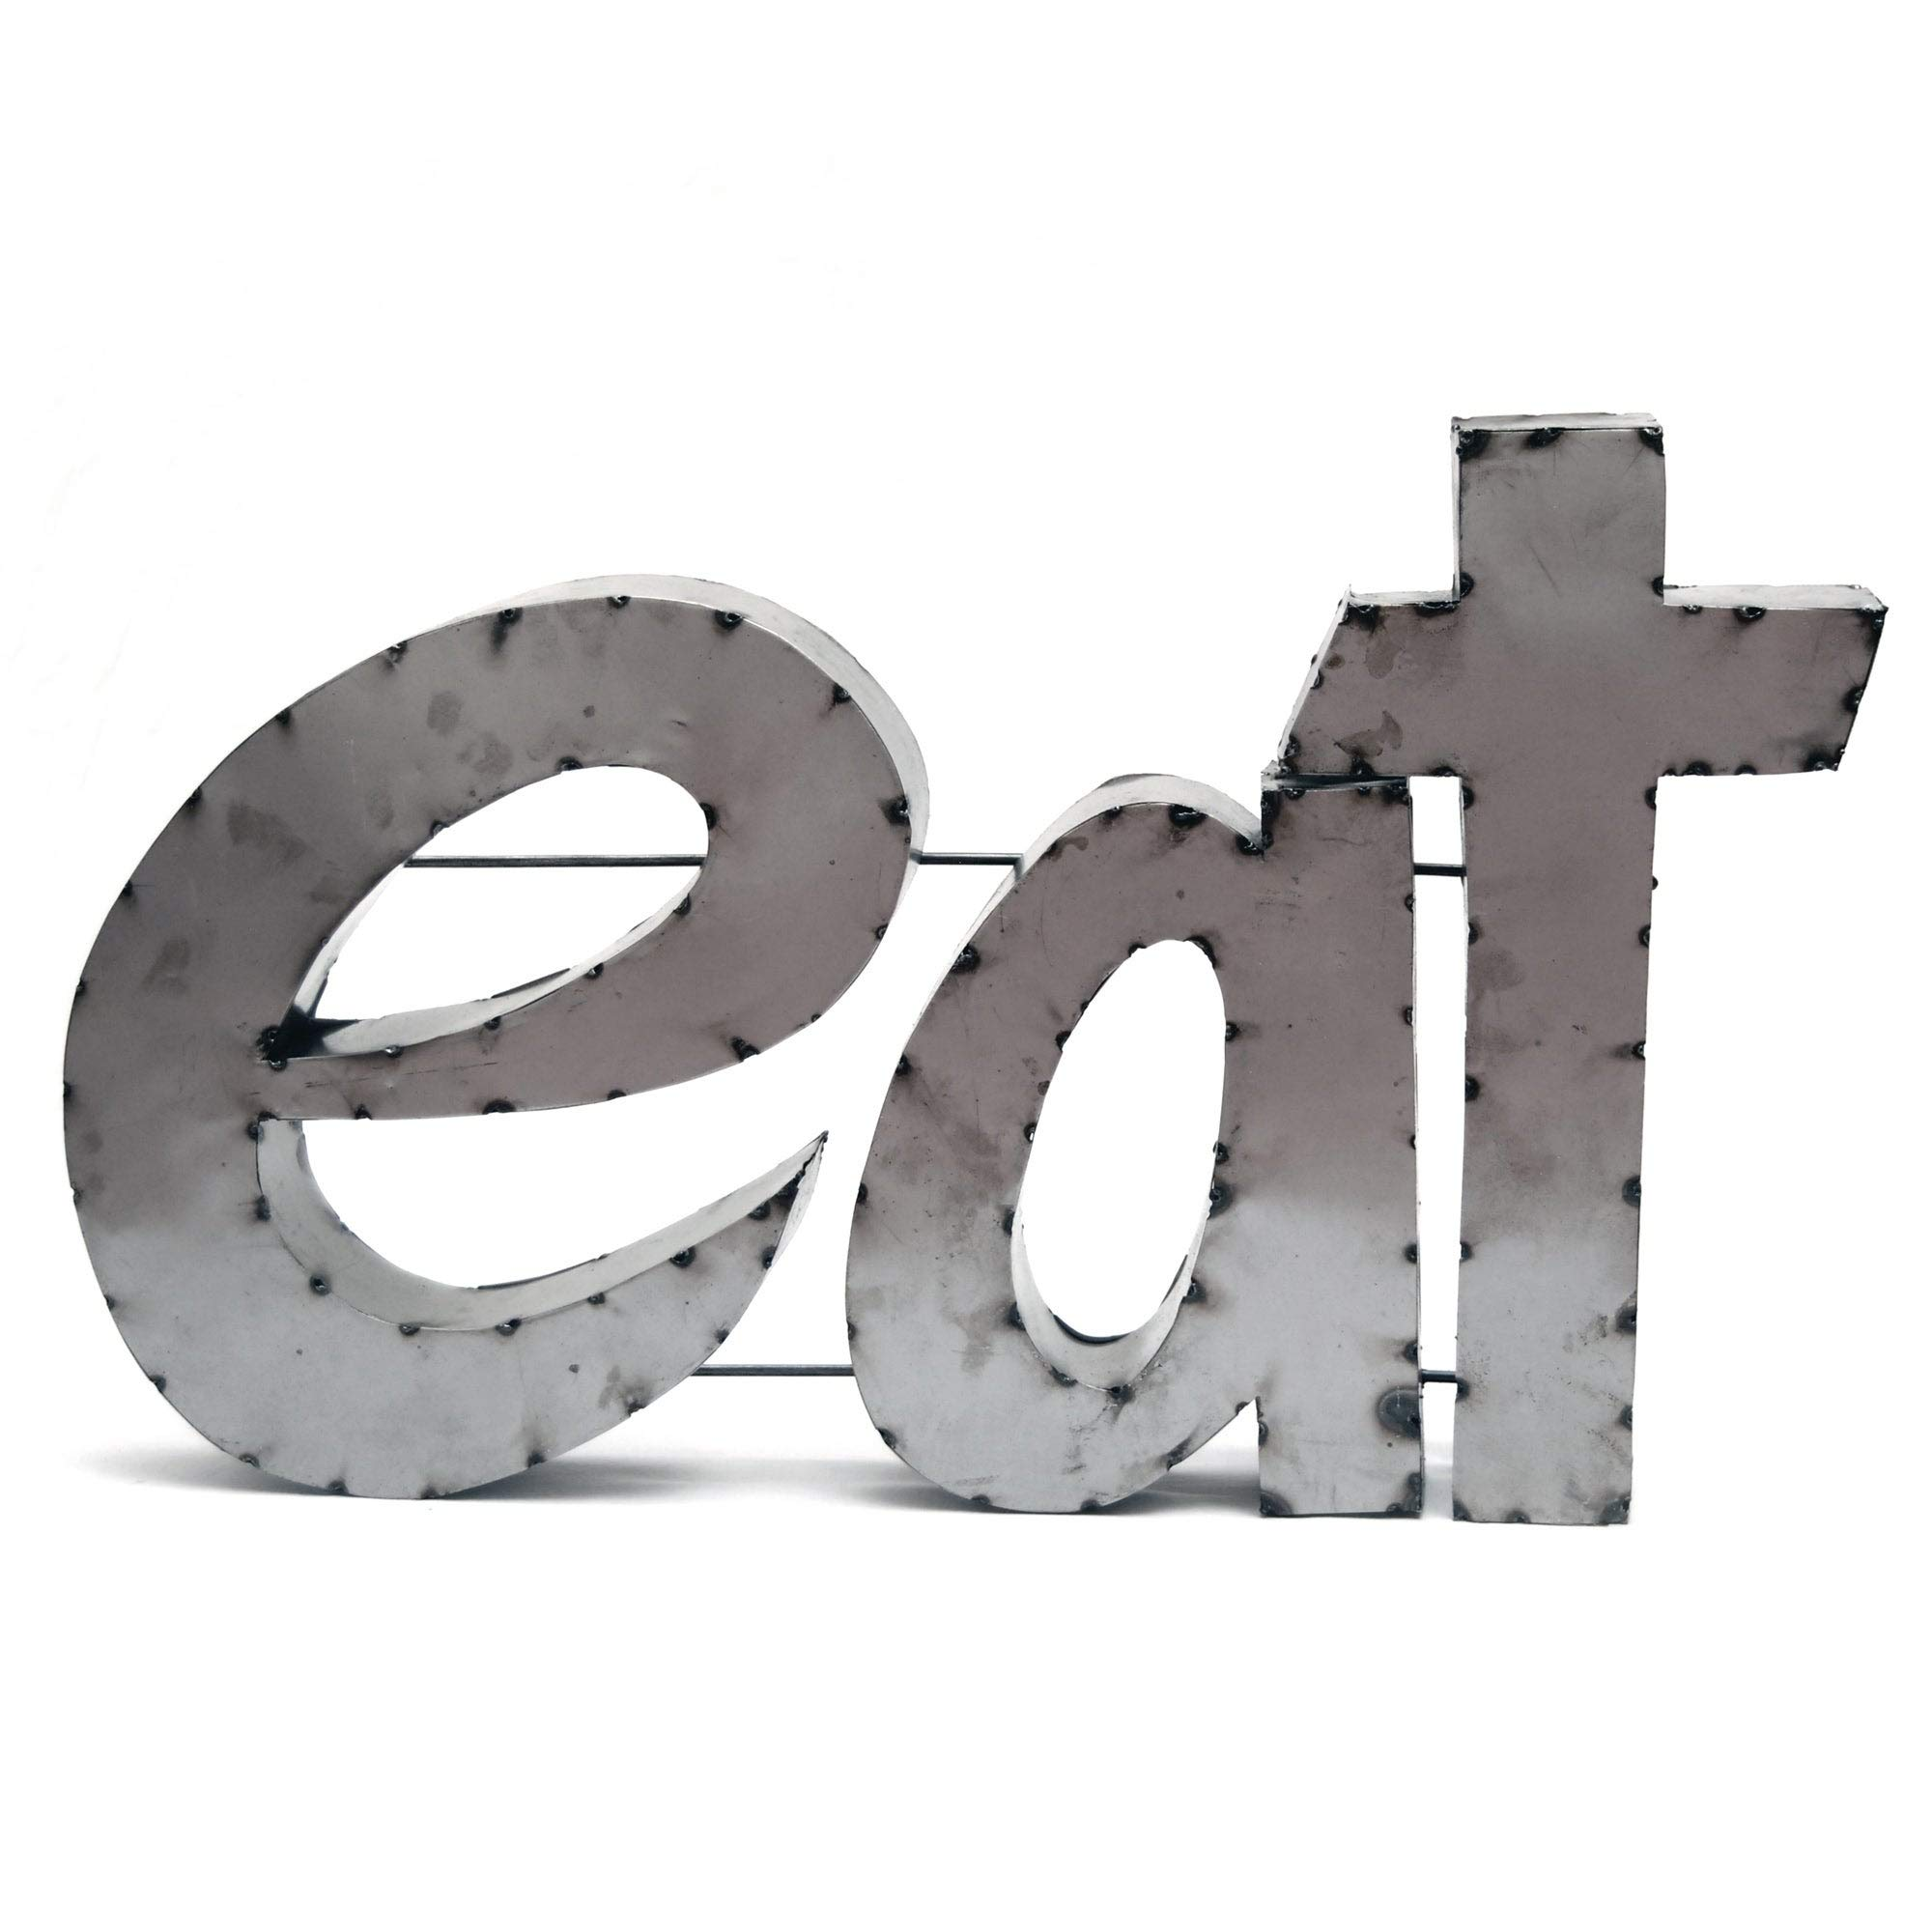 Eat W/Rebar Sign - N/a Silver Alphabet Metal Handmade by Unknown